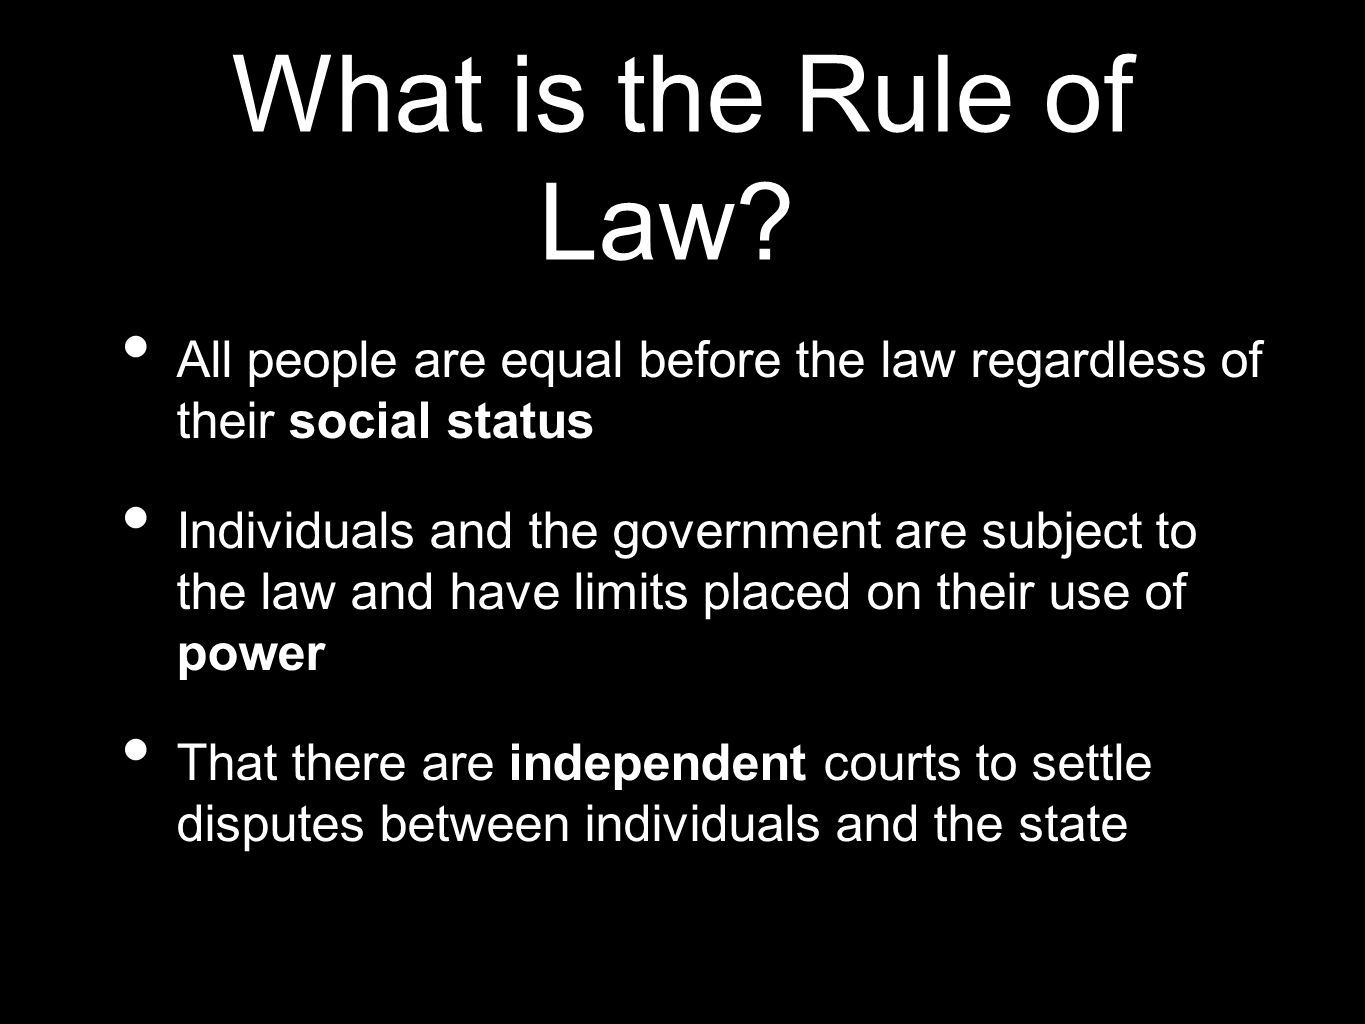 What is the Rule of Law All people are equal before the law regardless of their social status.